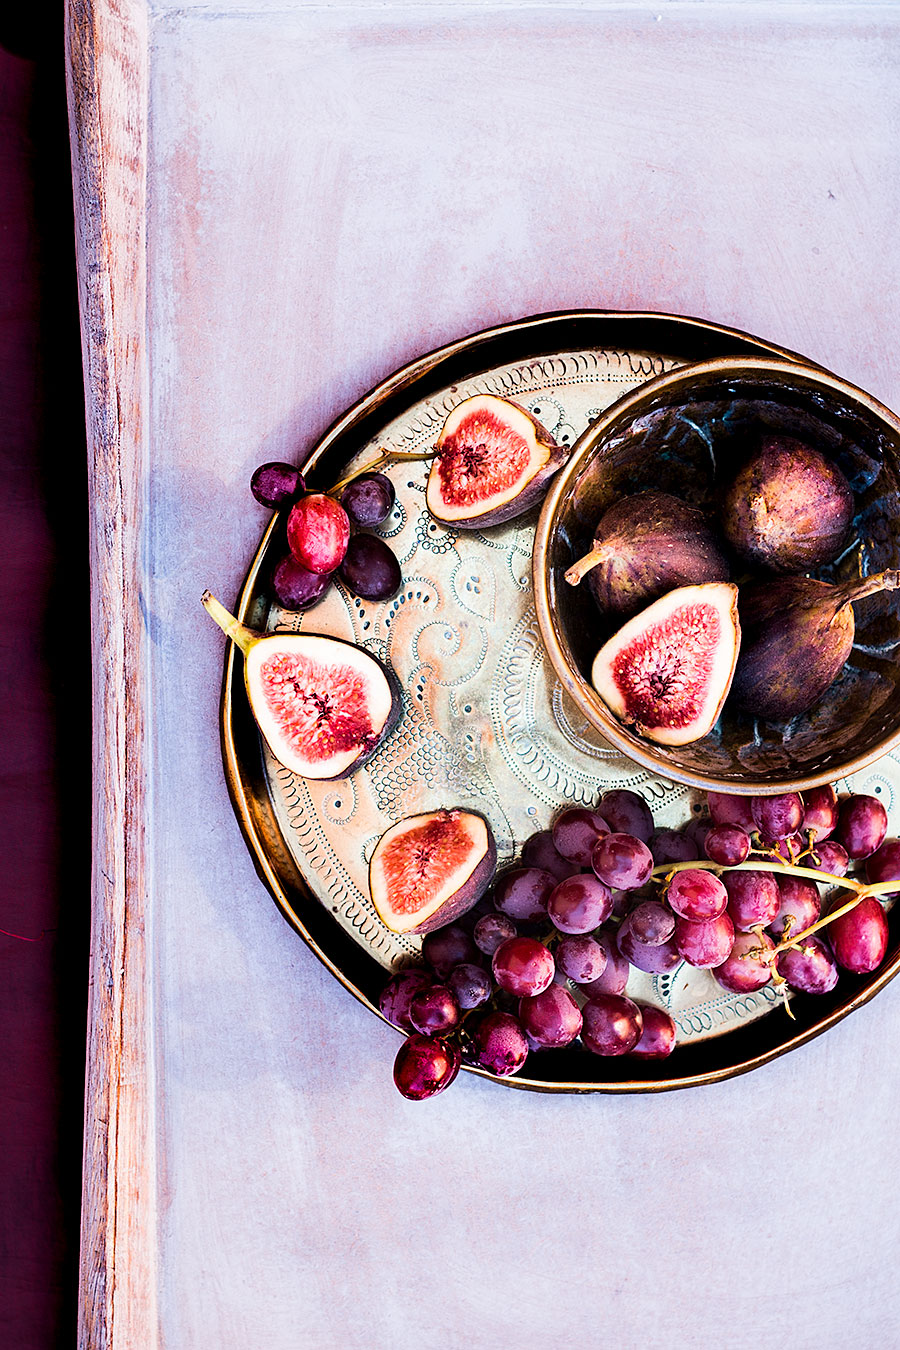 Figs by Laura Domingo